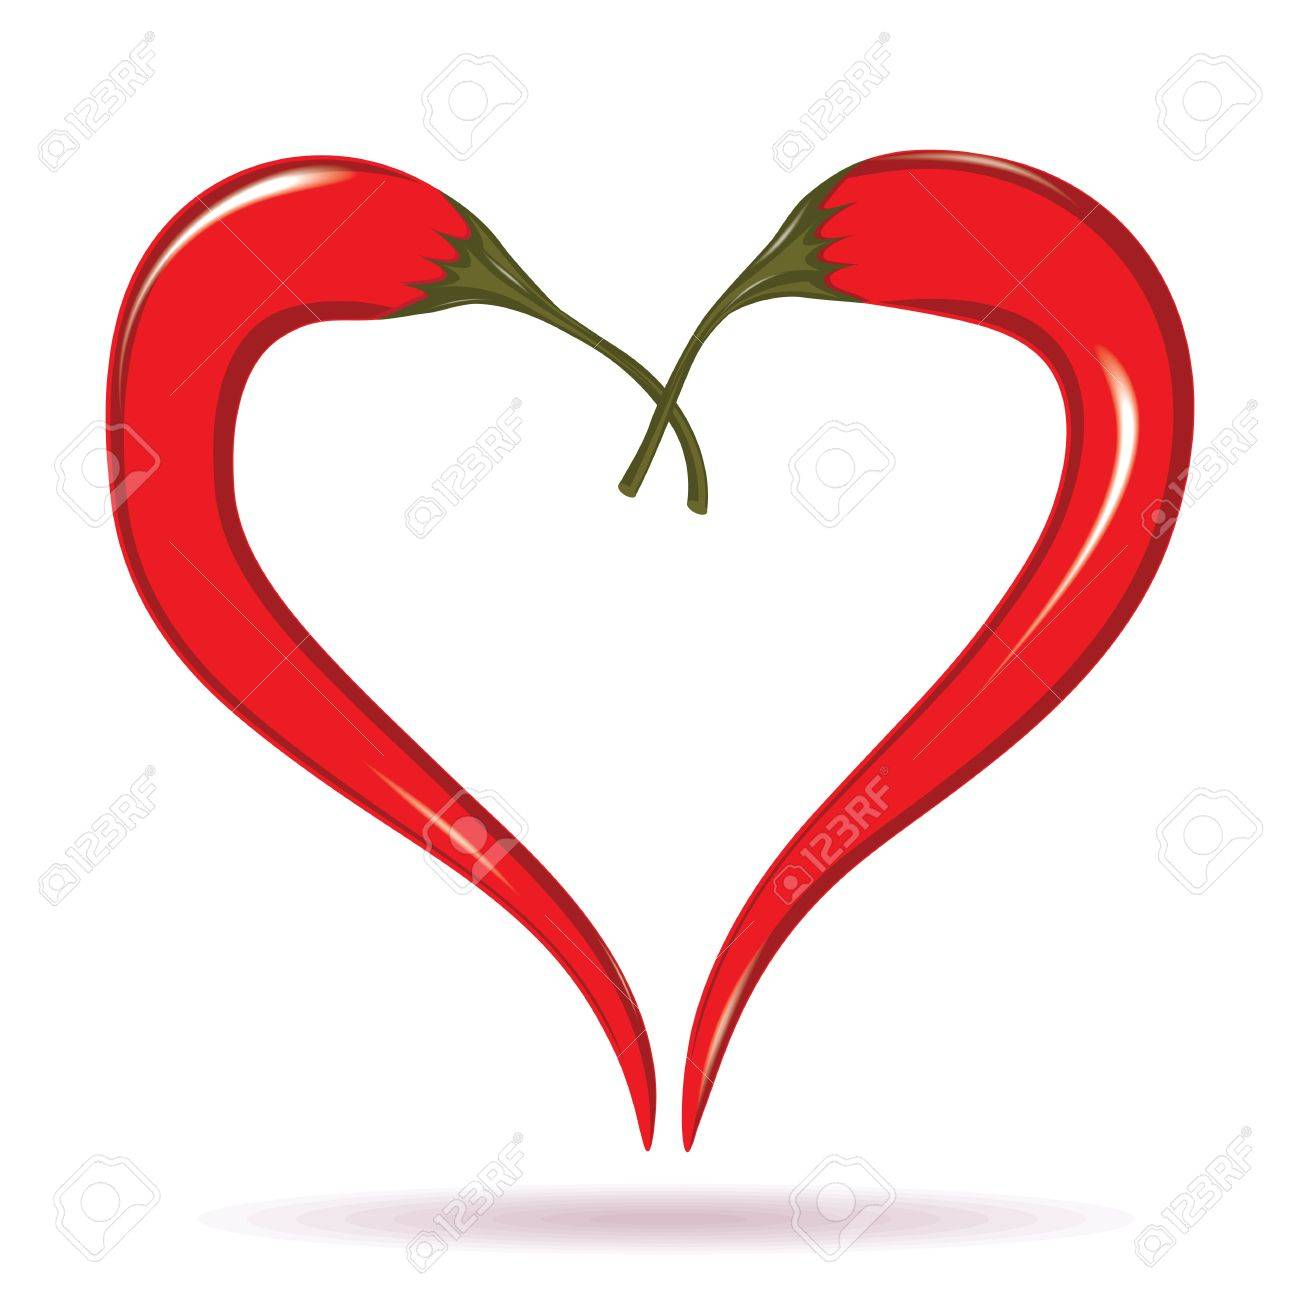 Heart of chili peppers. Hot valentine love symbol to azian mexican cooking. Element for design isolated on white. - 18012249